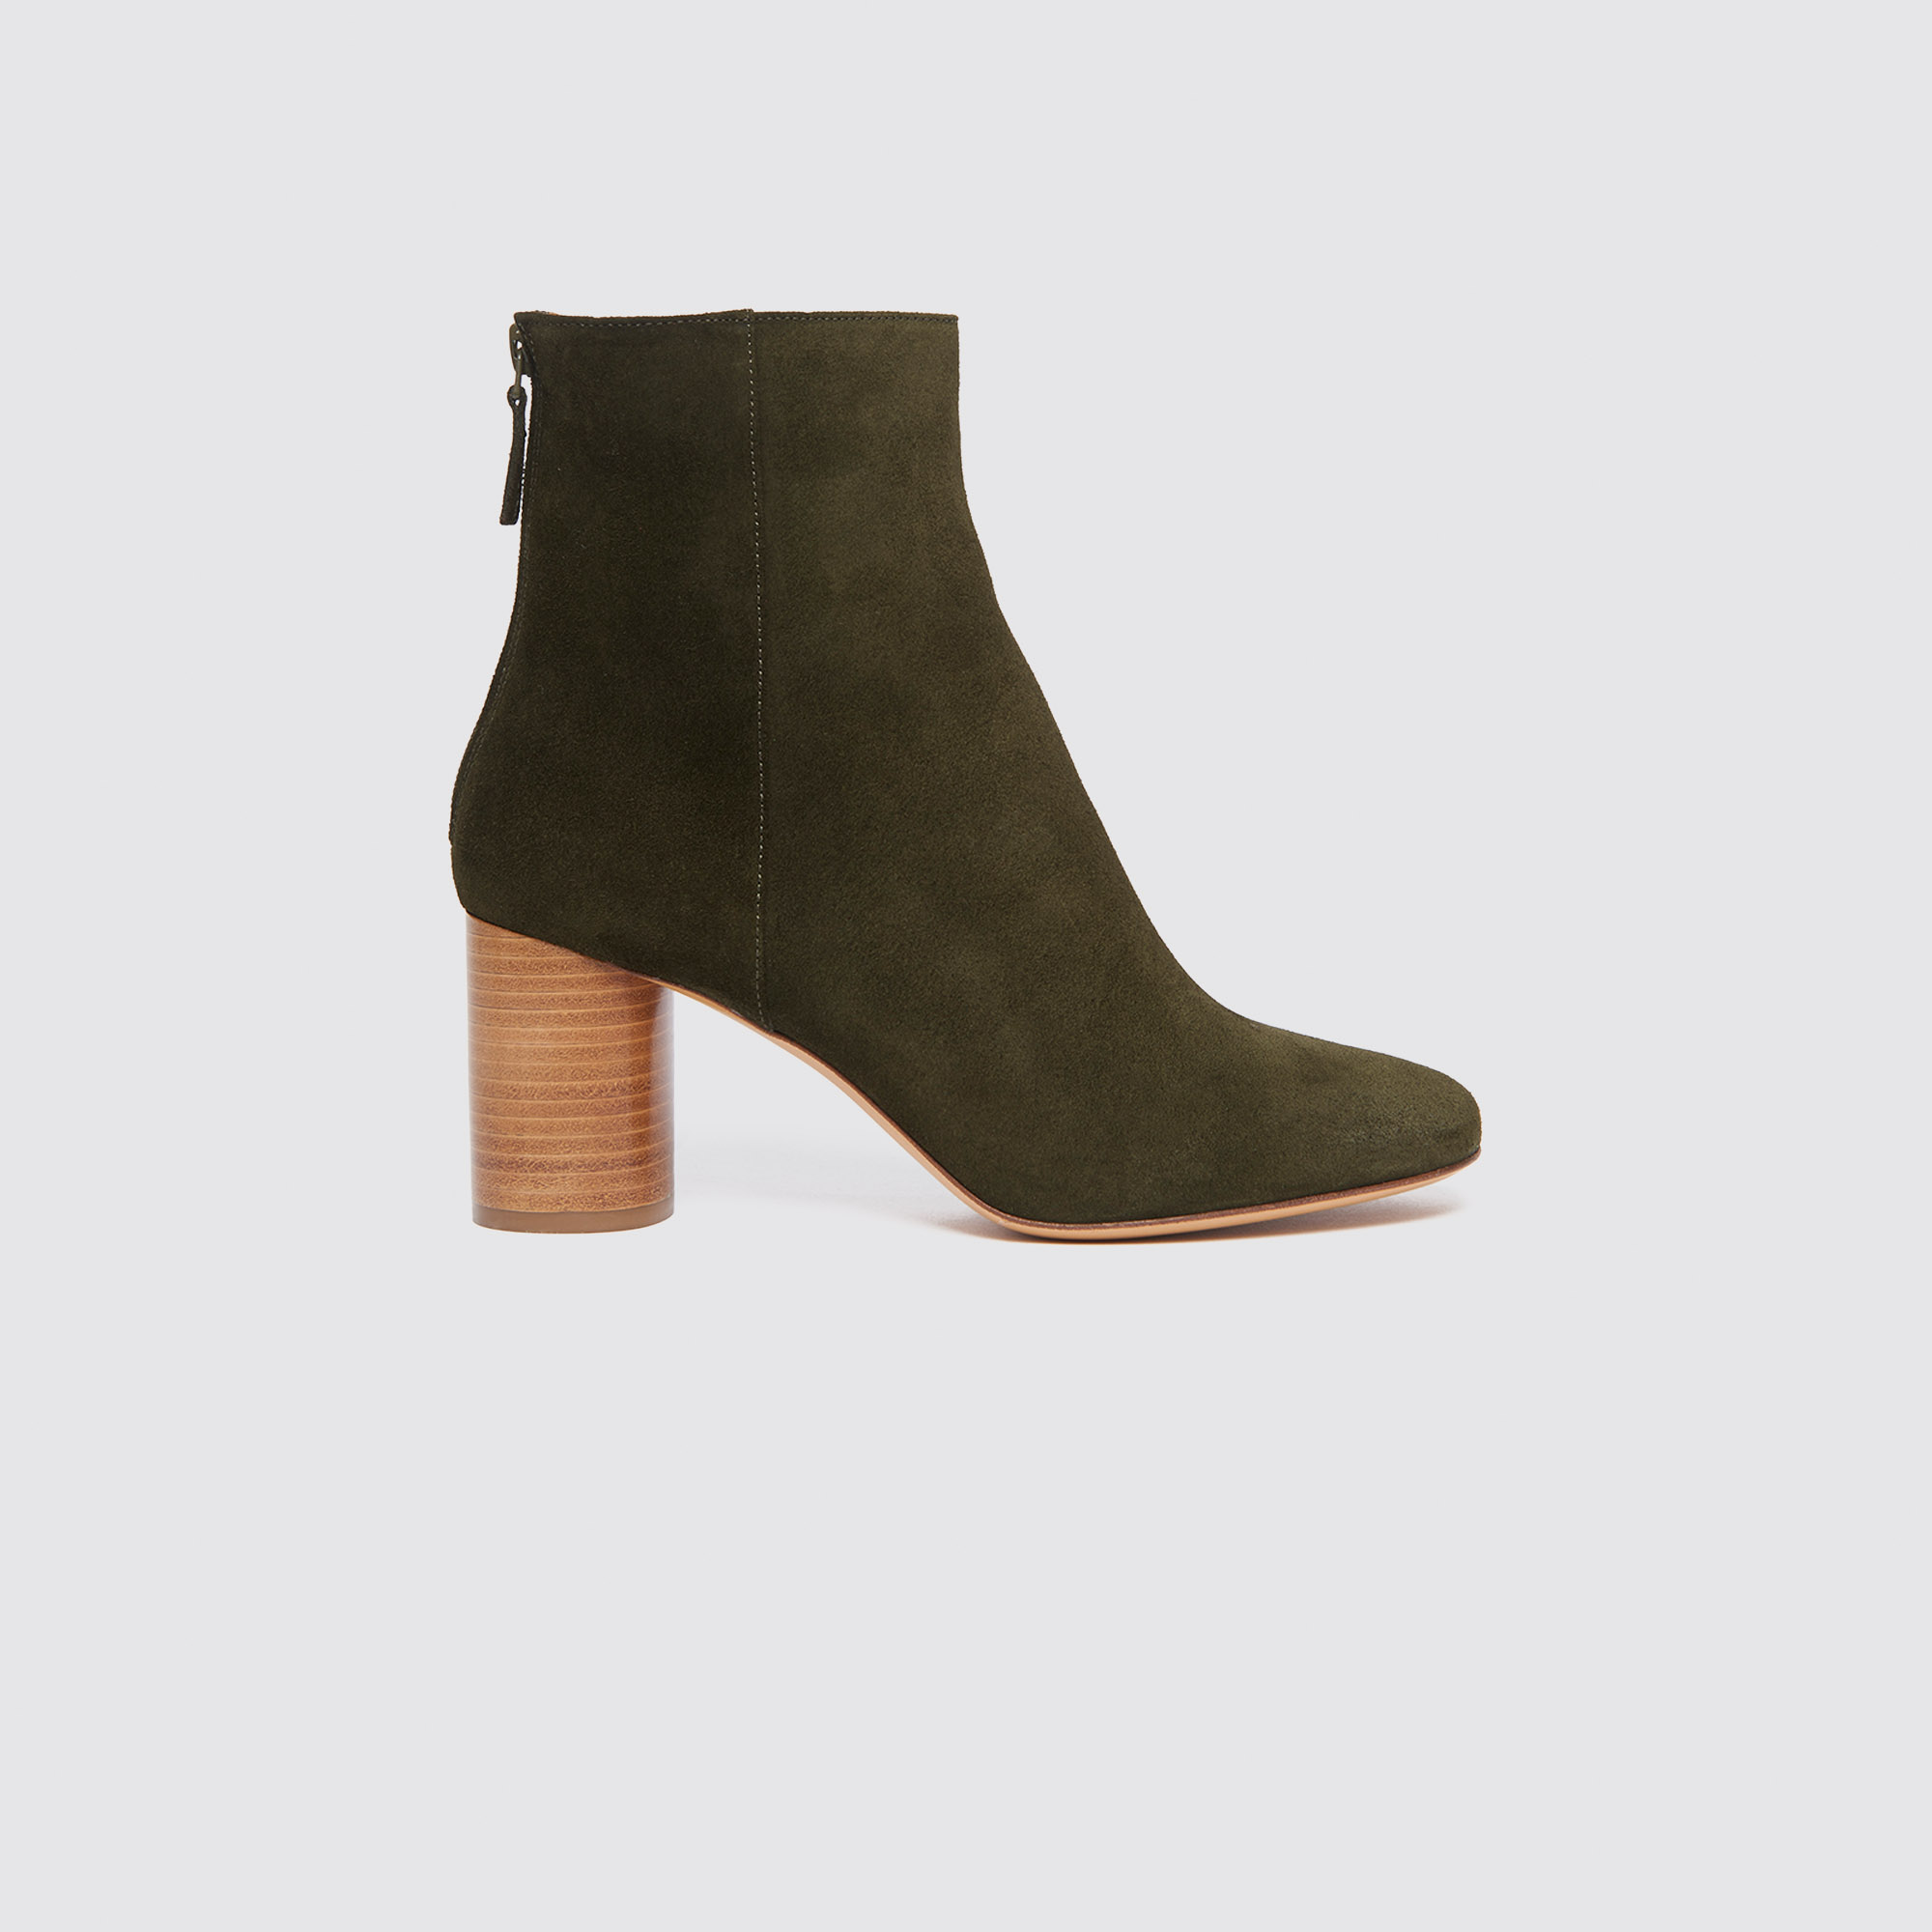 91c49cc5ff000 Suede ankle boots   Shoes color Olive Green ...